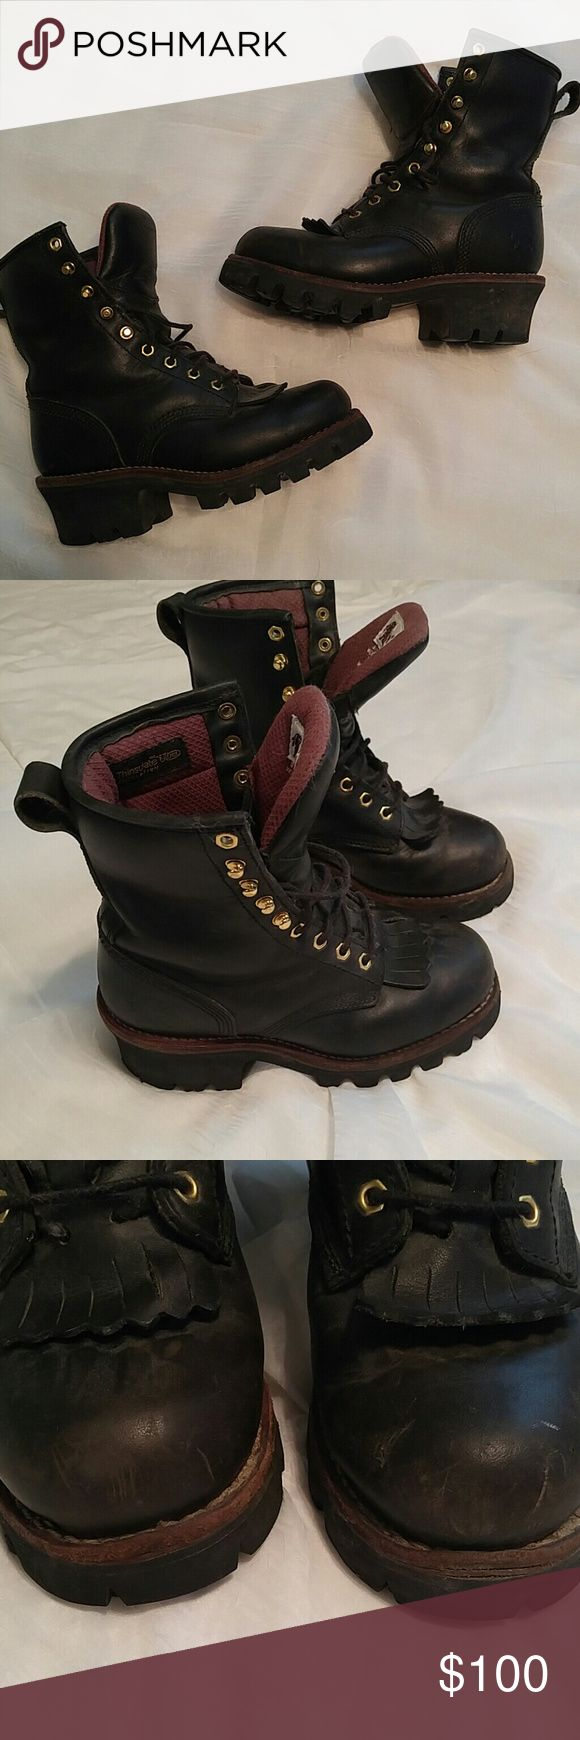 {Chippewa} Black Work Boots Gently used Chippewa work boots. Women's size 7. Picture 3 shows scuffs on toes. Boots are originally $170 new. Chippewa Shoes Lace Up Boots